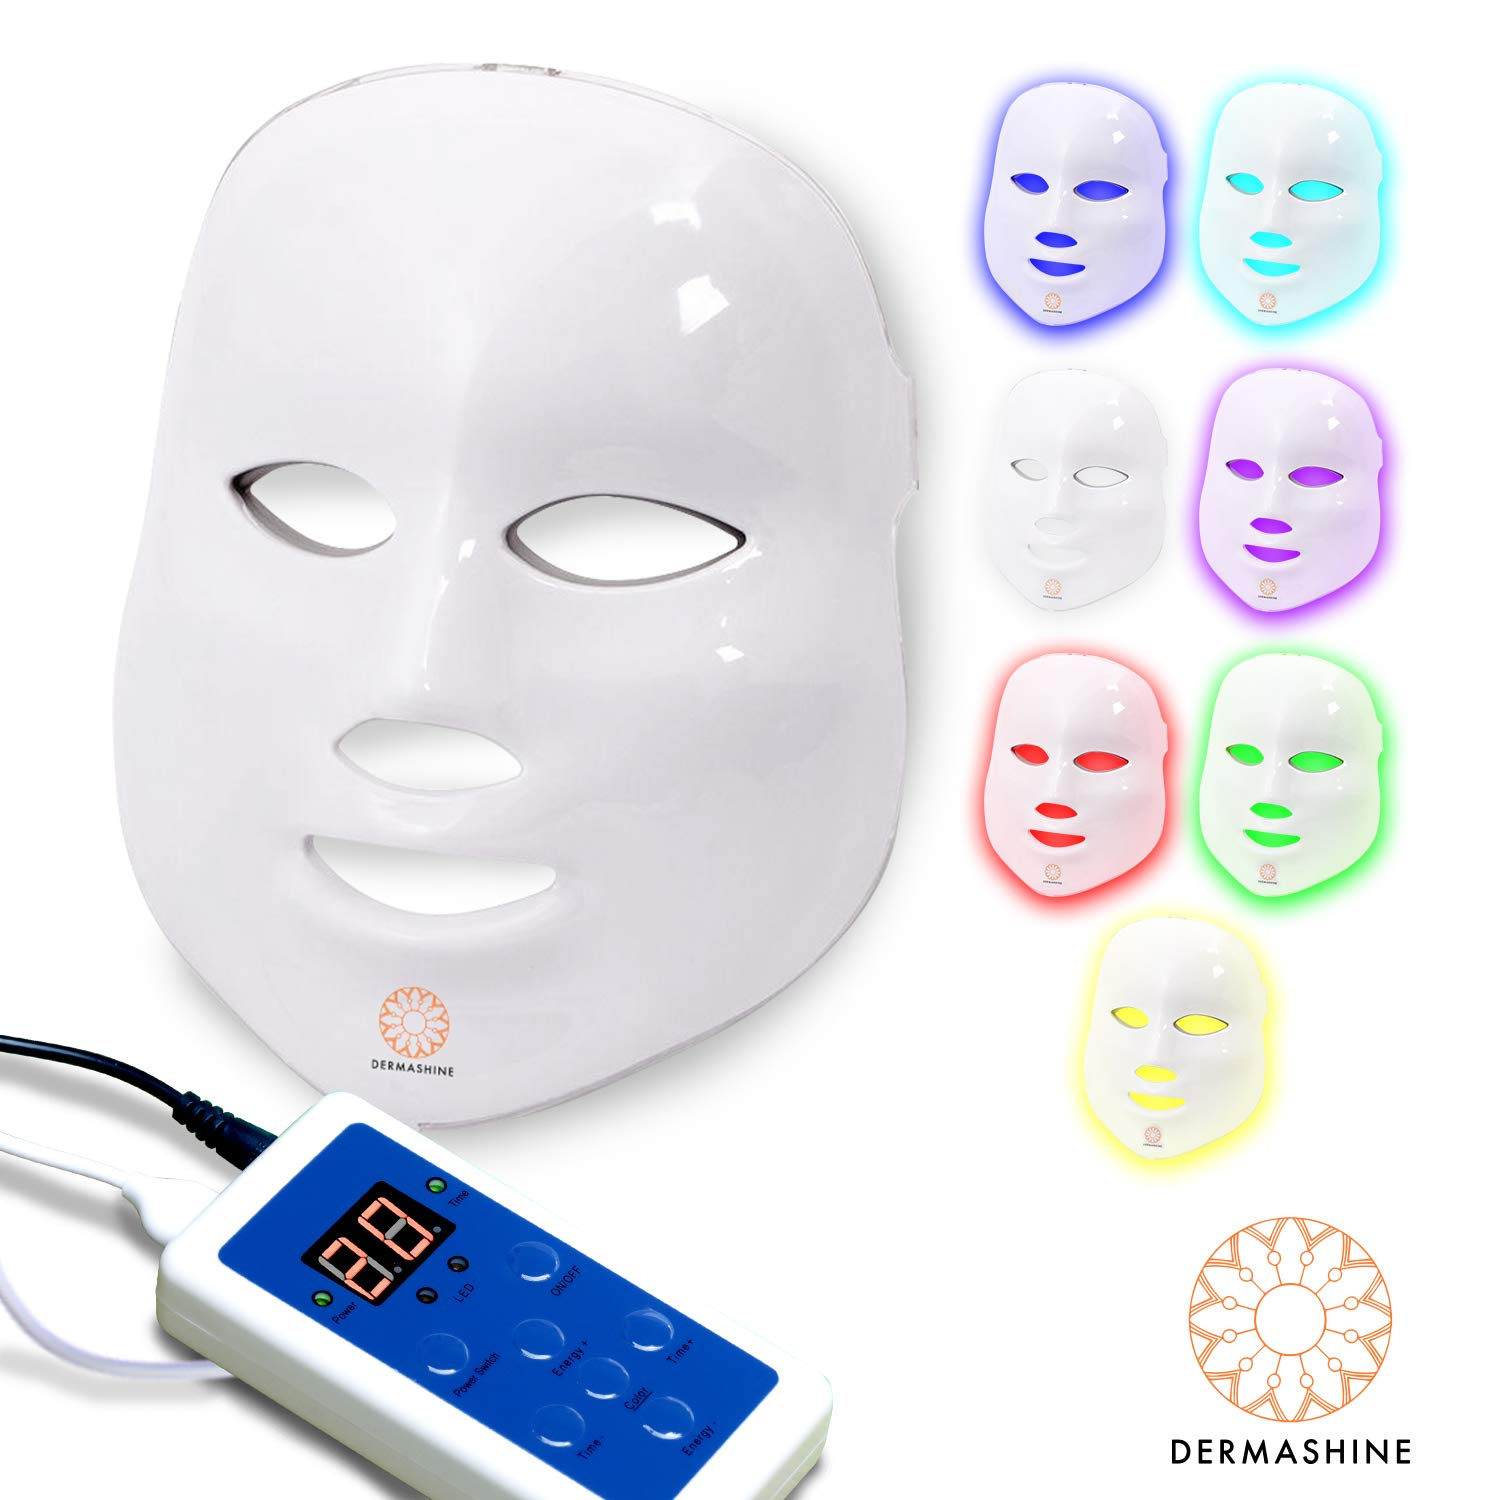 Dermashine Pro 7 Color LED Face Mask | Photon Red Light Therapy For Healthy Skin Rejuvenation | Collagen, Anti Aging, Wrinkles, Scarring | Korean Skin Care, Facial Skin Care Mask by Dermashine (Image #1)